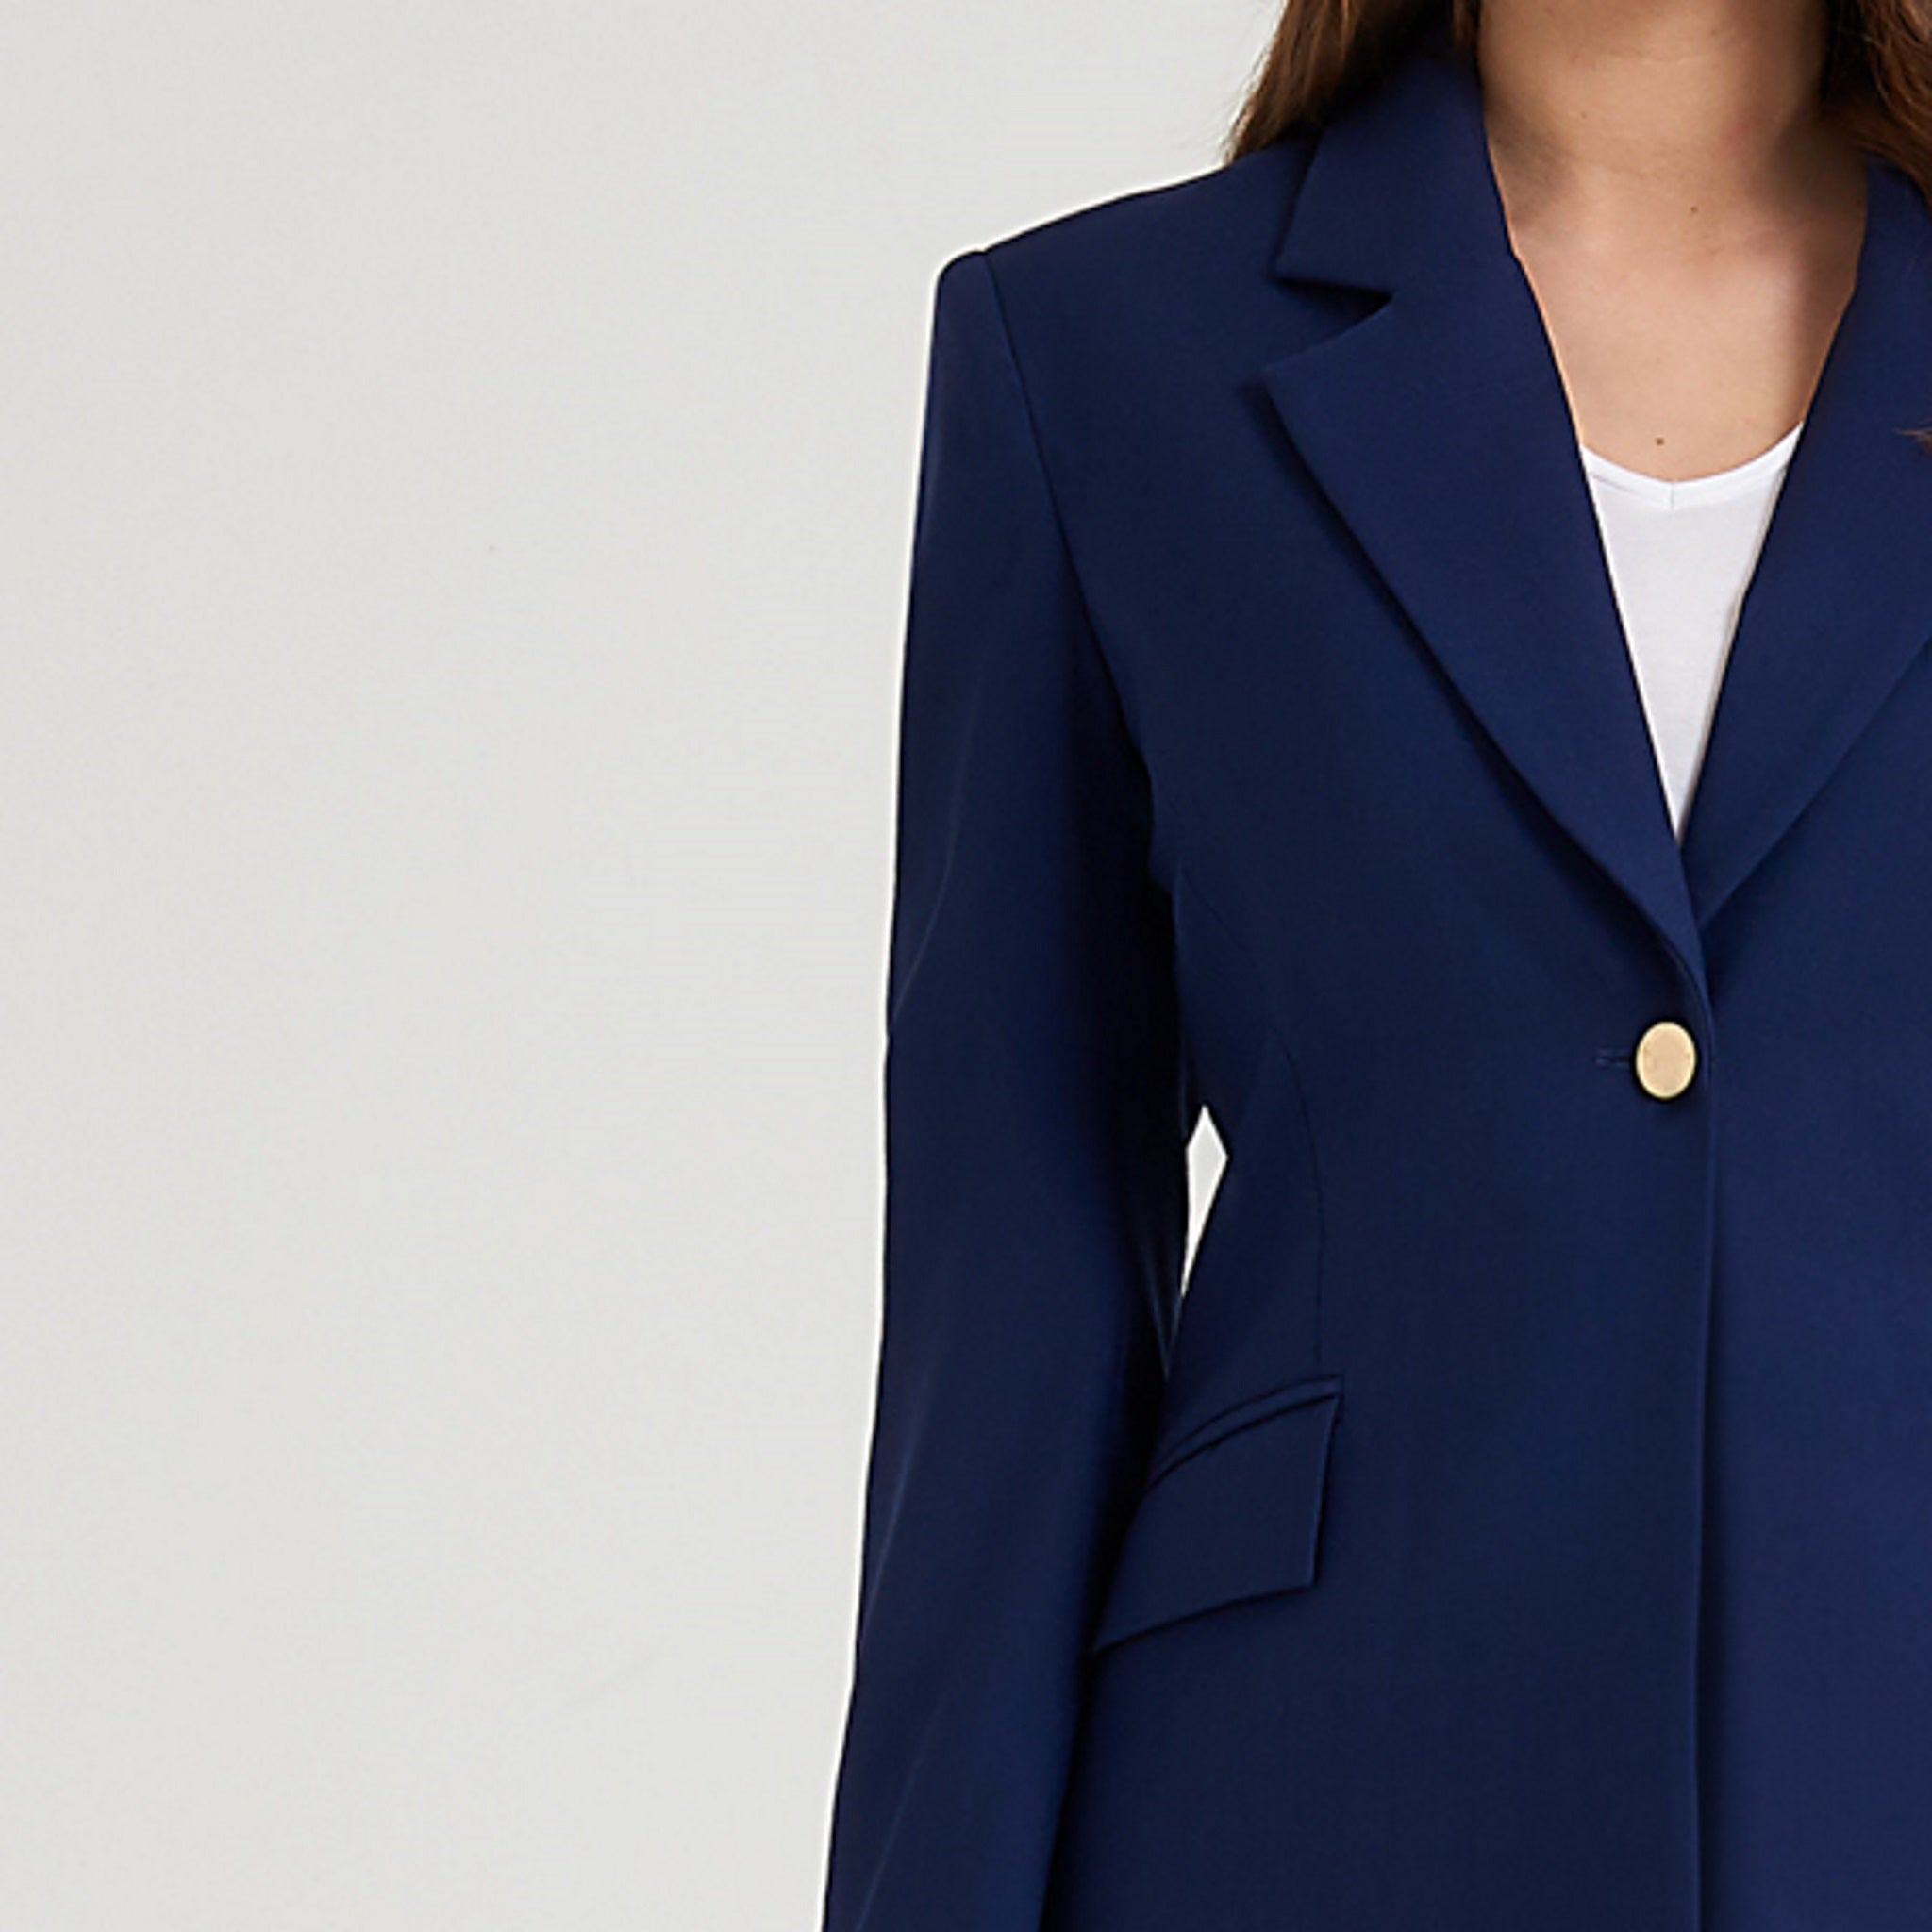 Breathable blue blazer with statement golden buttons and functional angled flap pockets